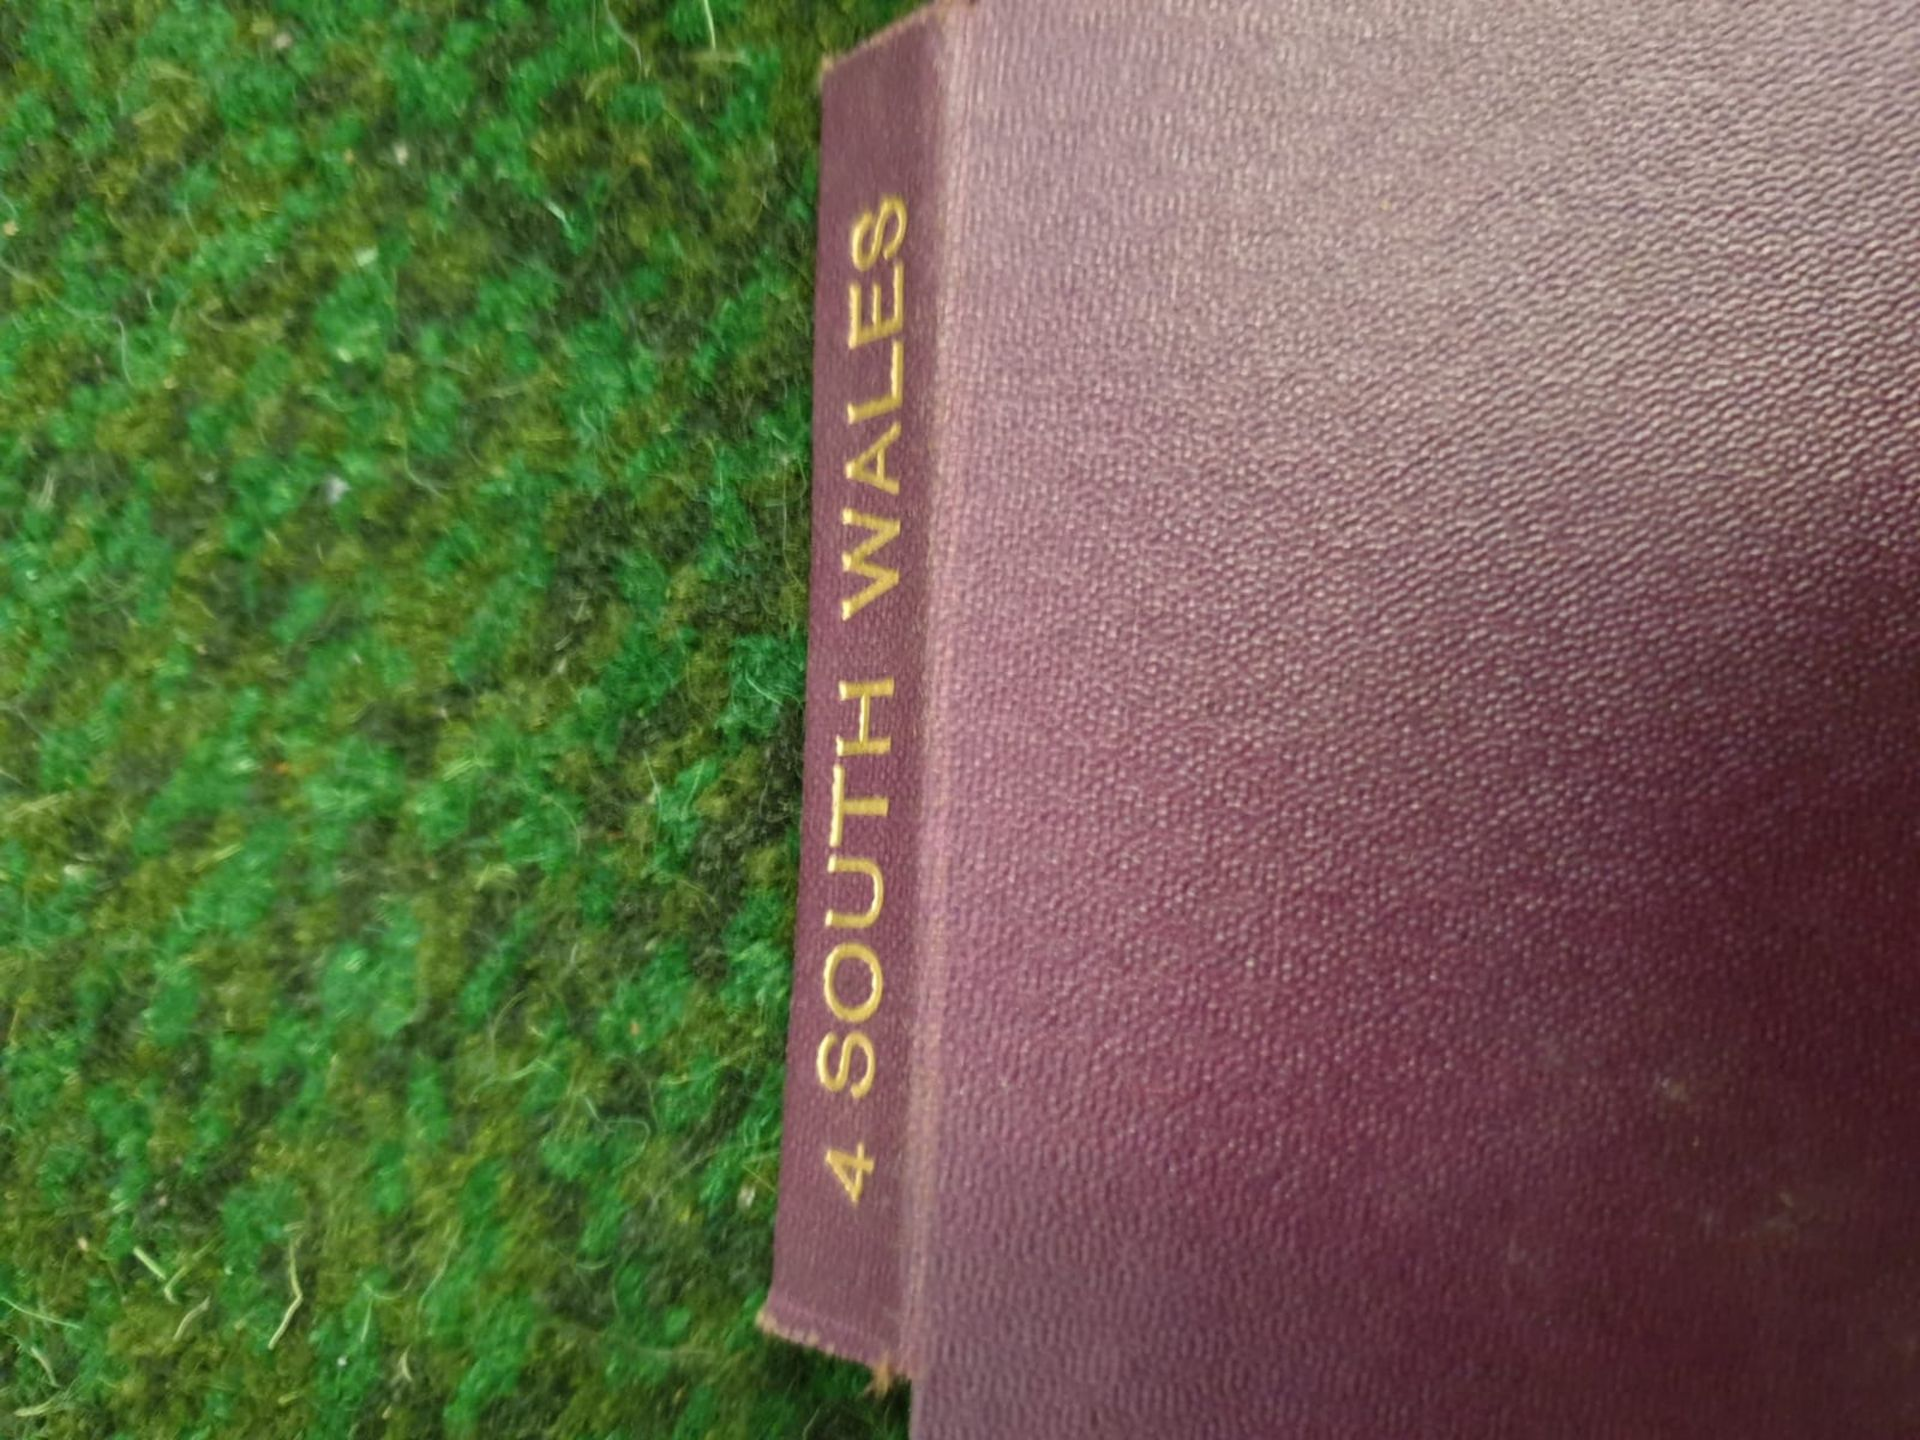 A set of 8 G.W. Bacon & Co VintageLarge Print Road maps in leather slipcase Circa. 1910 - Image 8 of 12